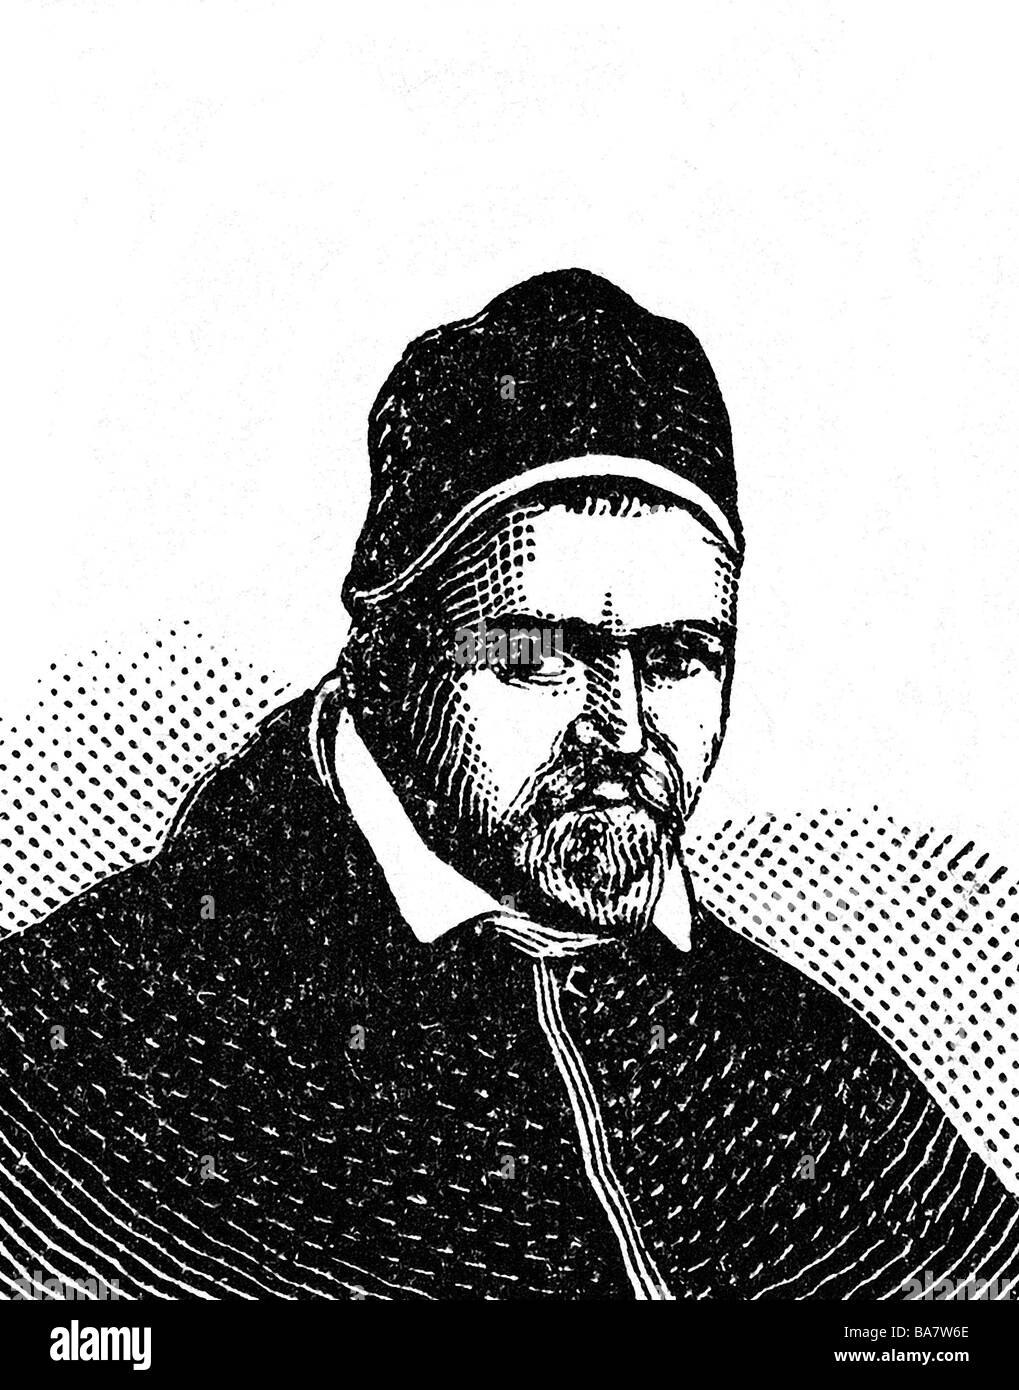 Paul V. (Camillo Borghese), 17.9.1552 -  28.1.1621, Pope 16.5.1605 - 28.1.1621, portrait, wood engraving, circa Stock Photo